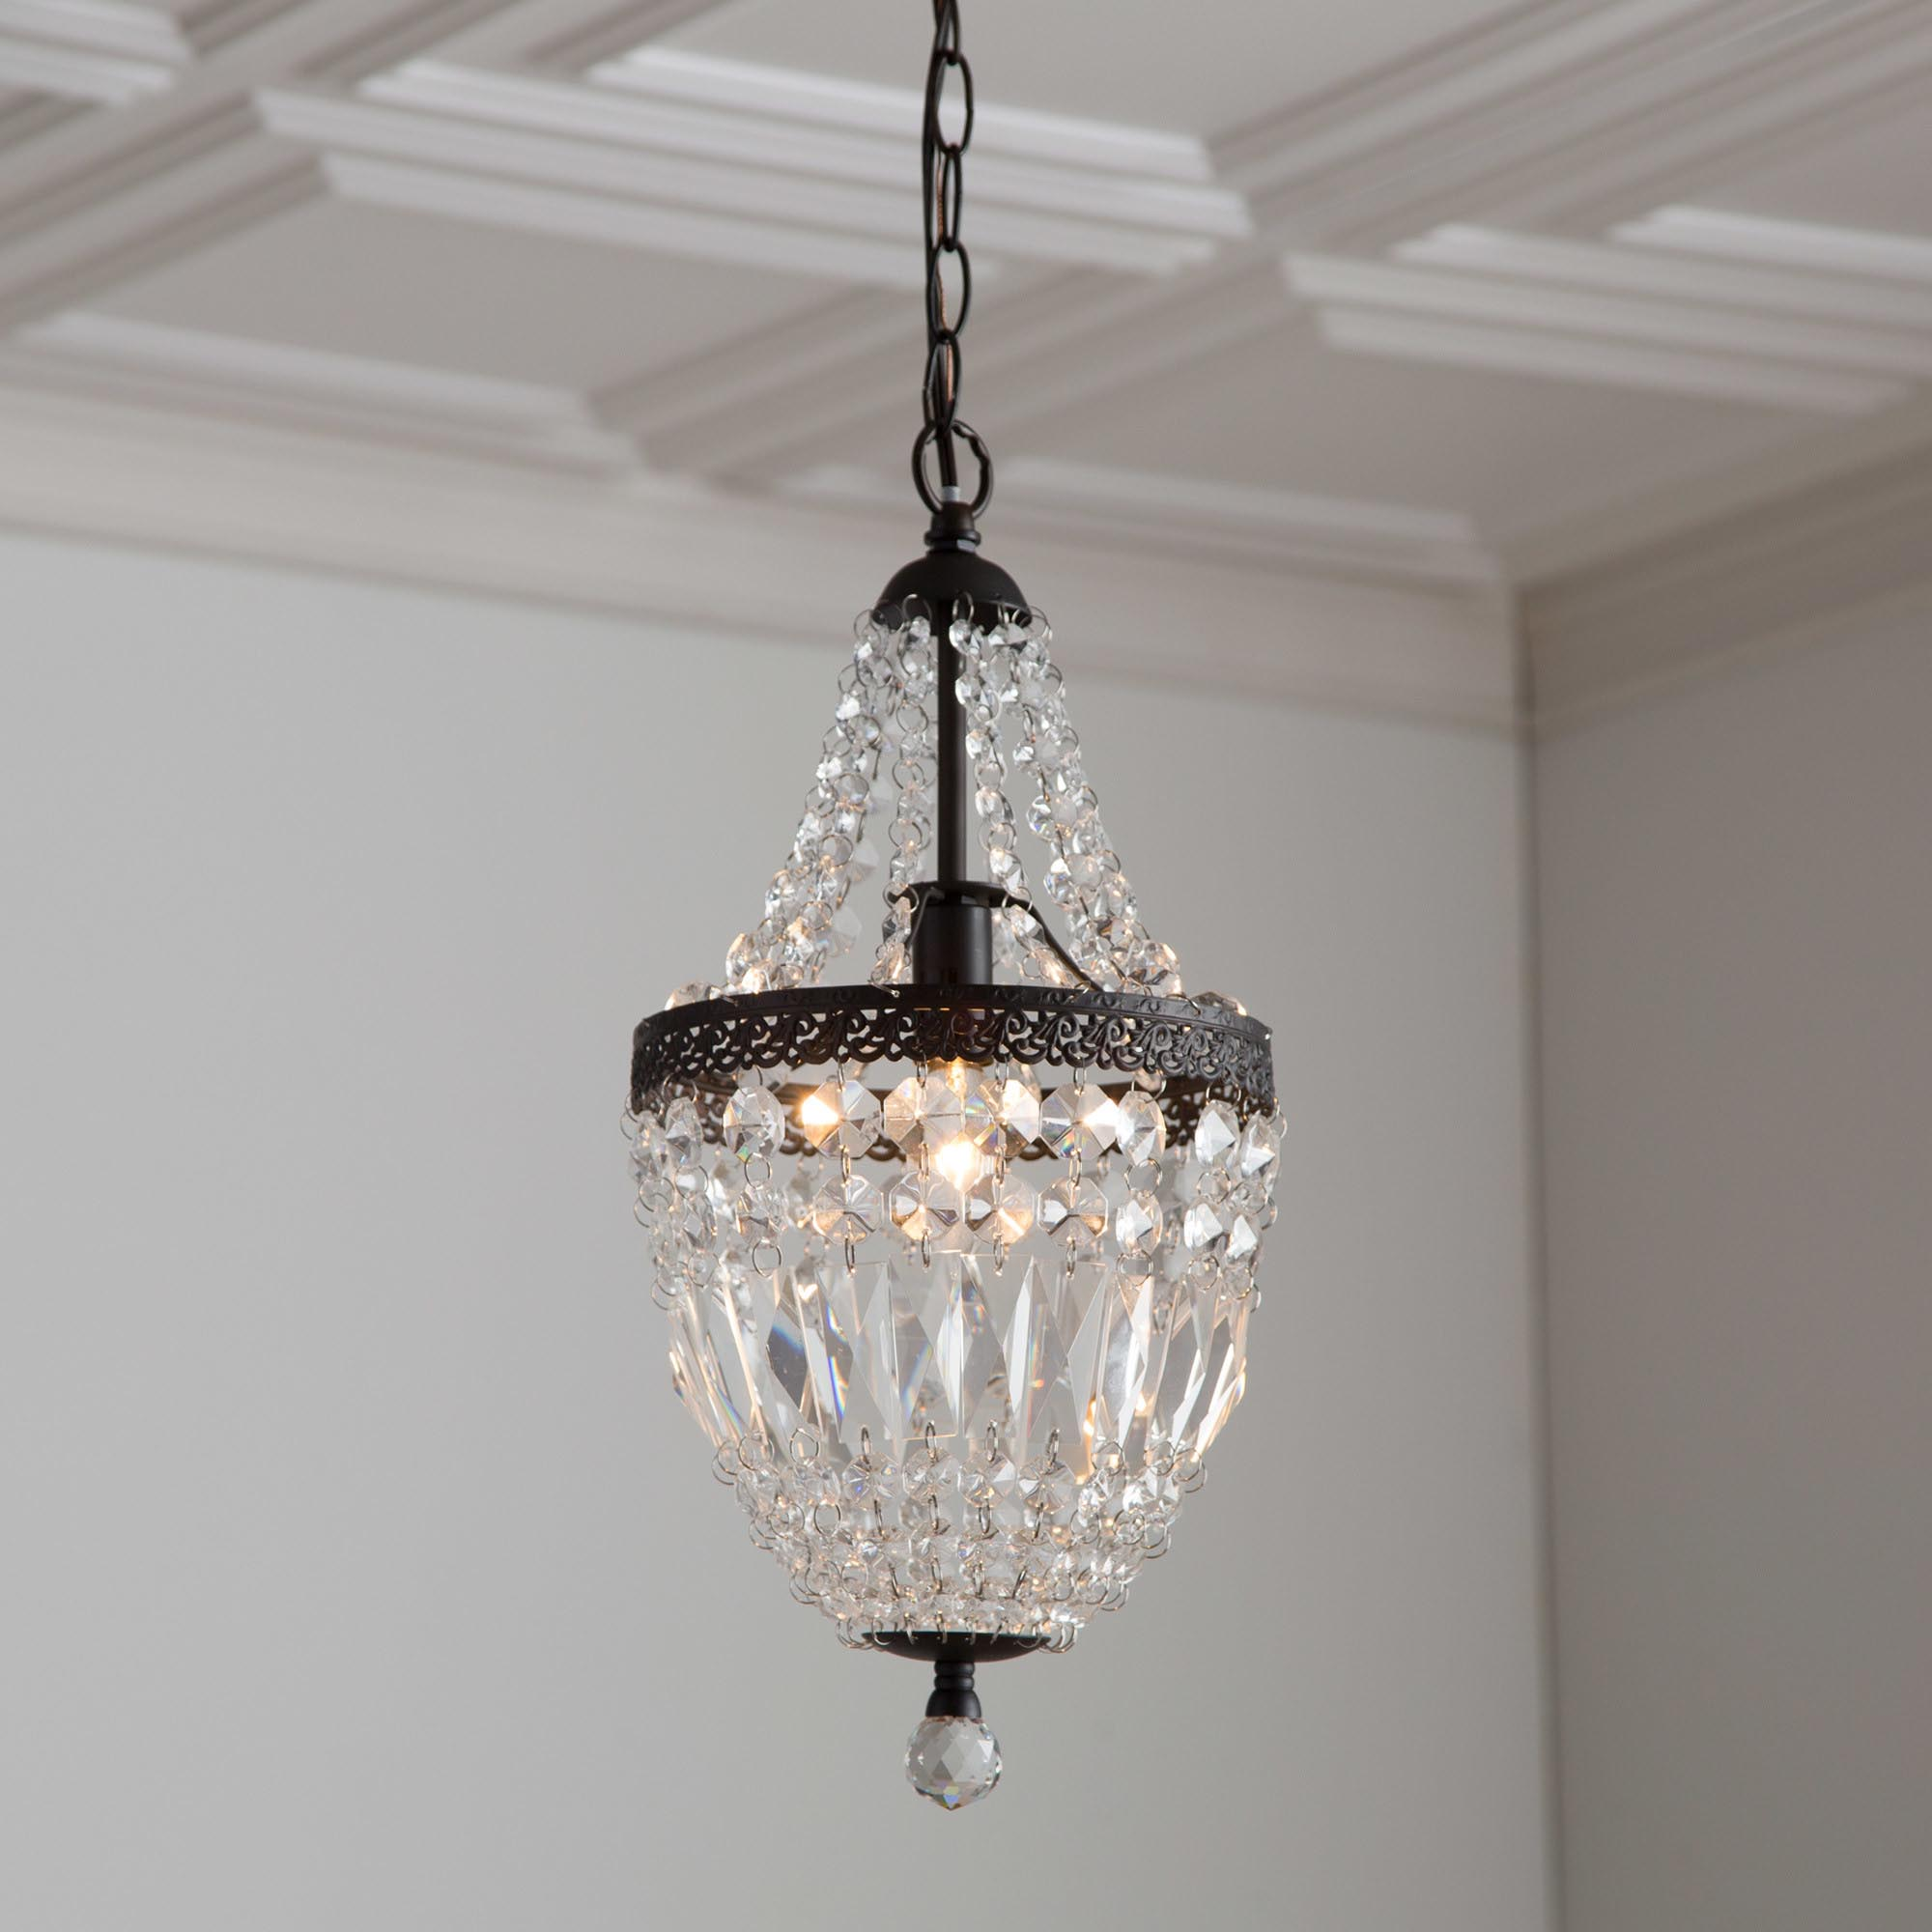 Bronze Mini Chandelier With Crystals Light Fixtures Design Ideas